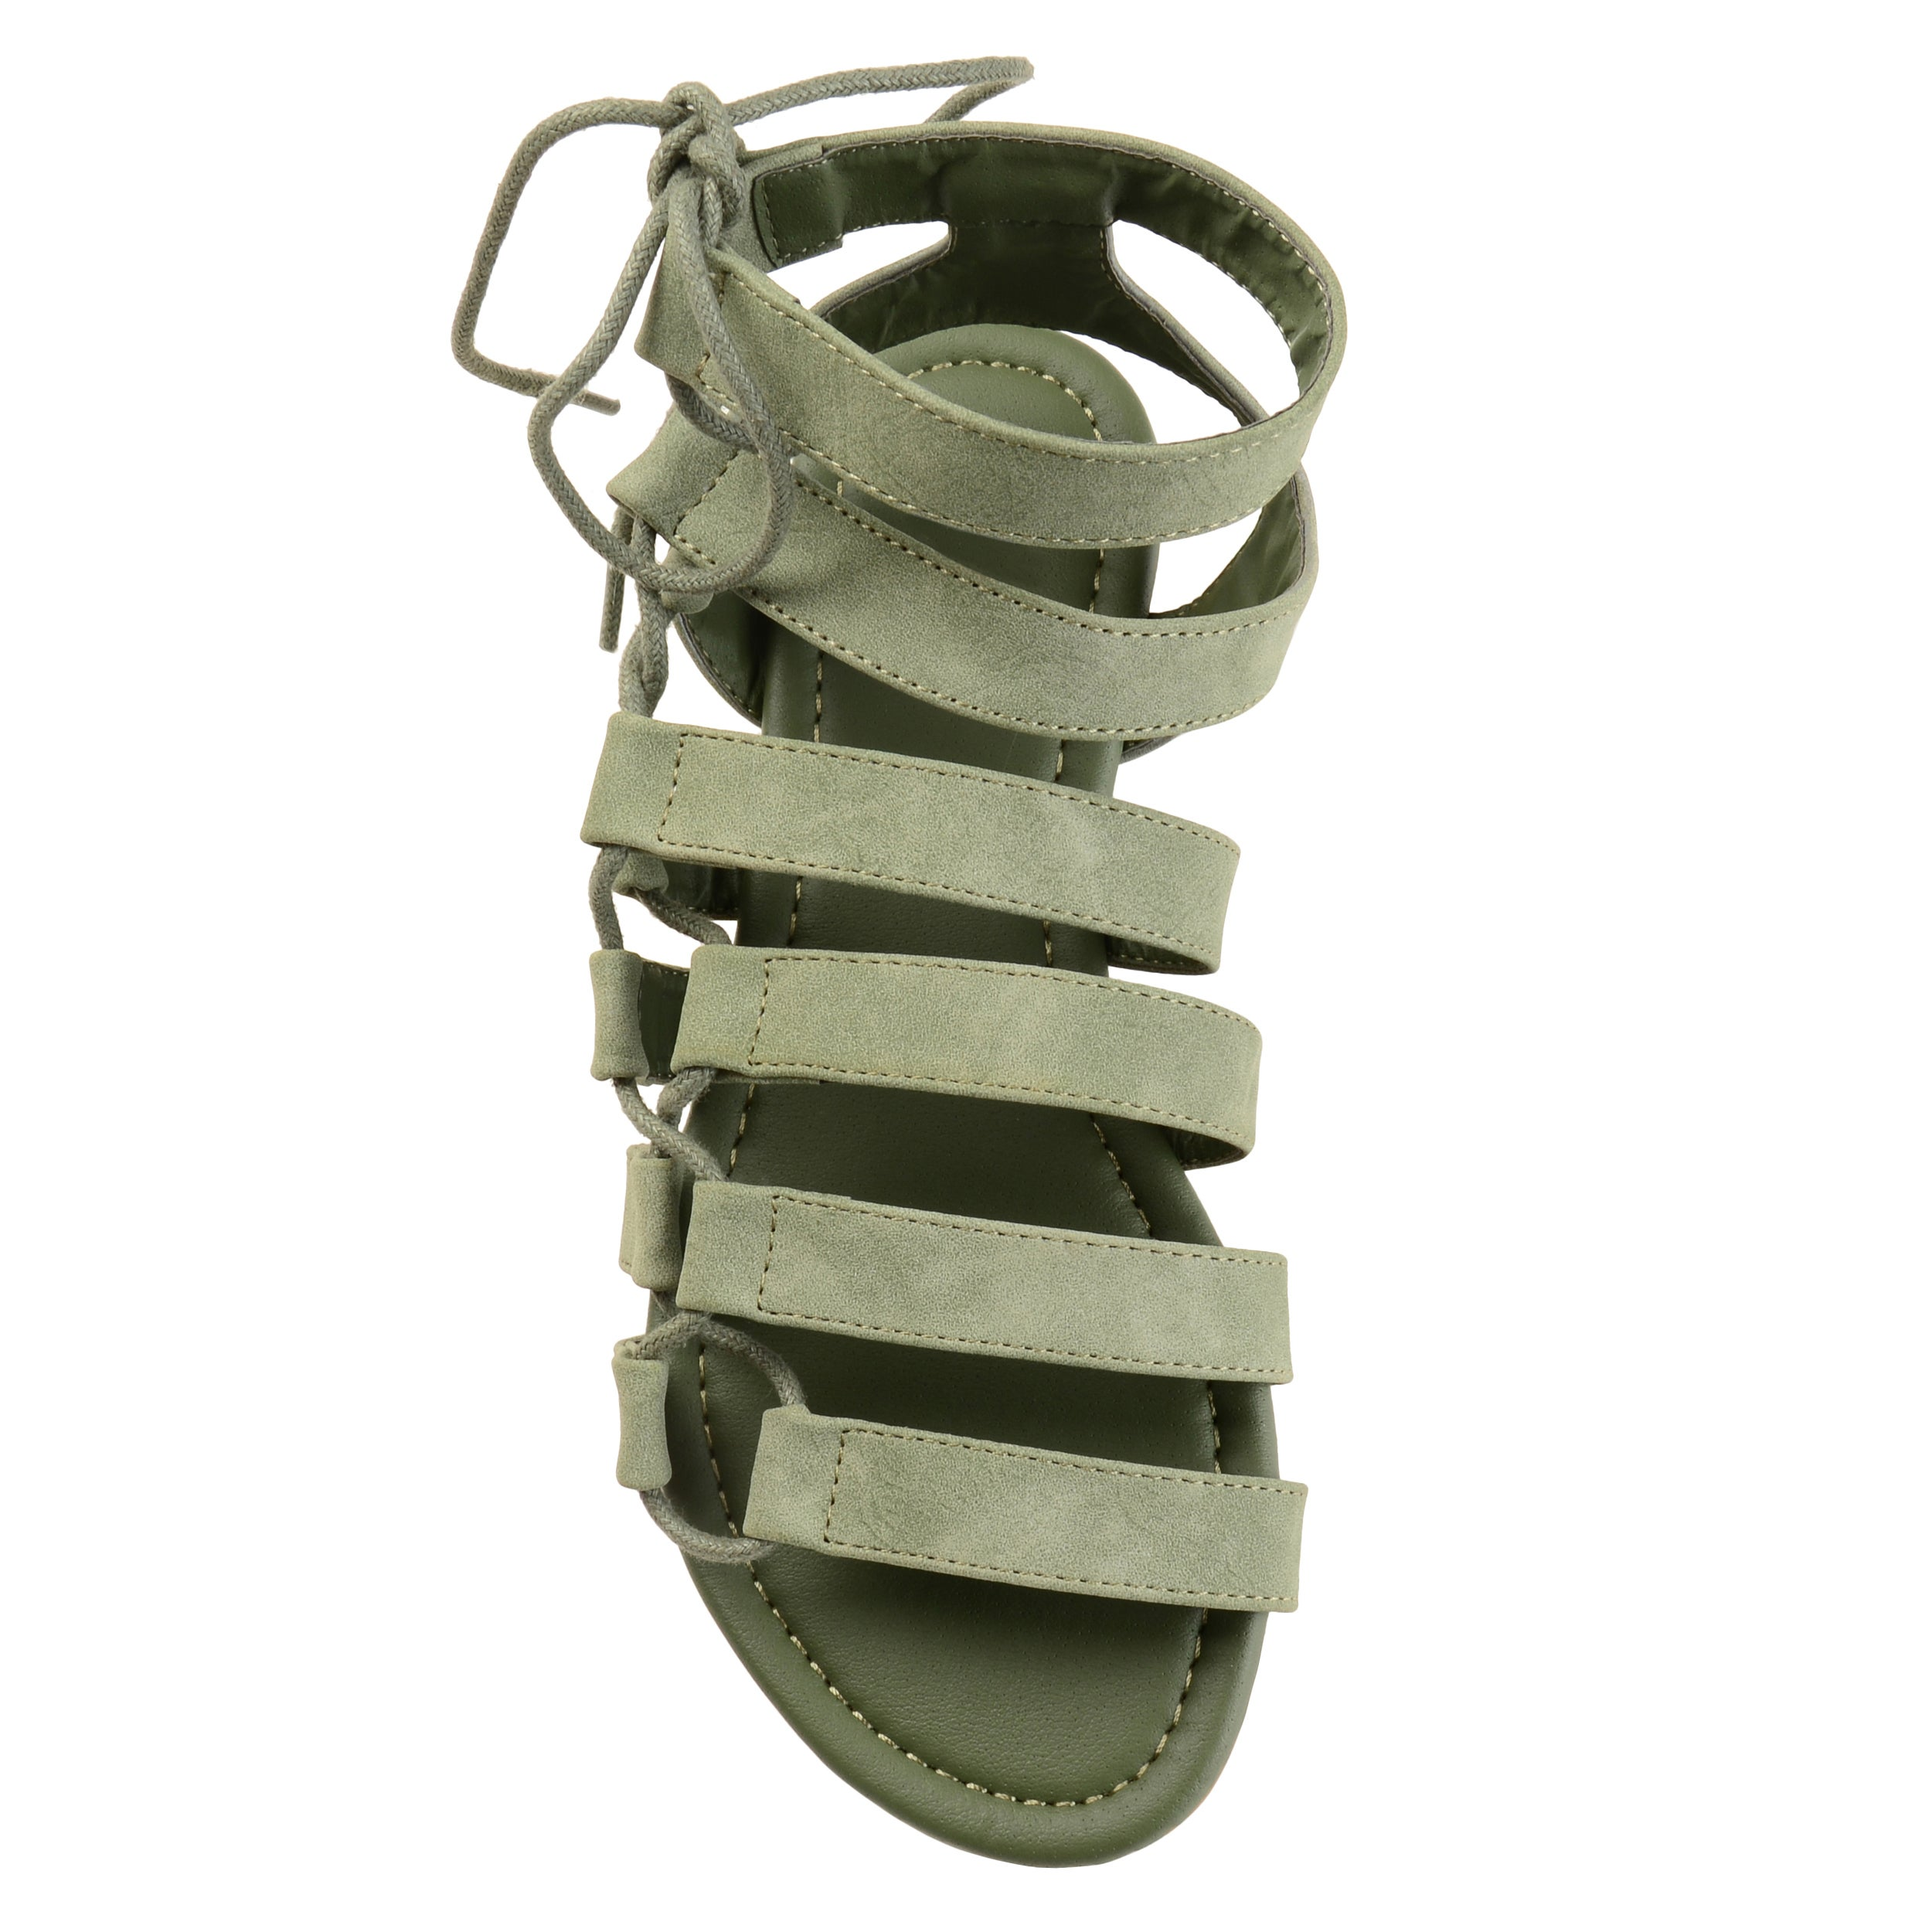 abd62c522d73bd Shop Journee Collection Women s  Cleo  Strappy Caged Gladiator Sandals - On  Sale - Free Shipping On Orders Over  45 - Overstock - 18515267